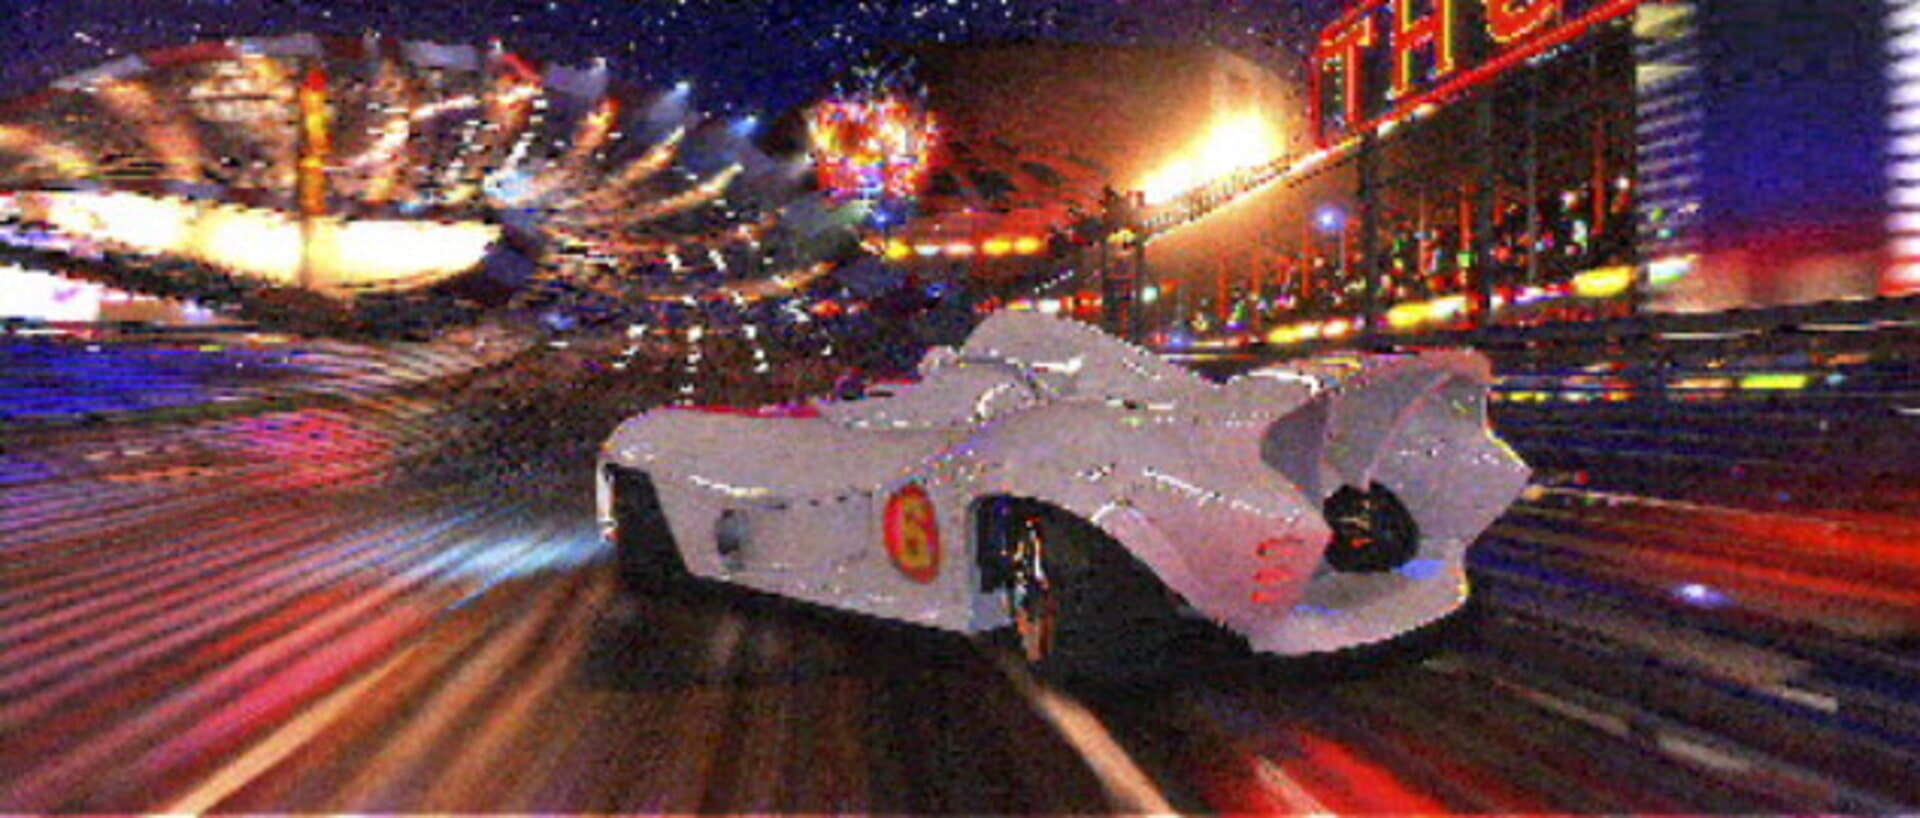 Speed Racer - Image 15